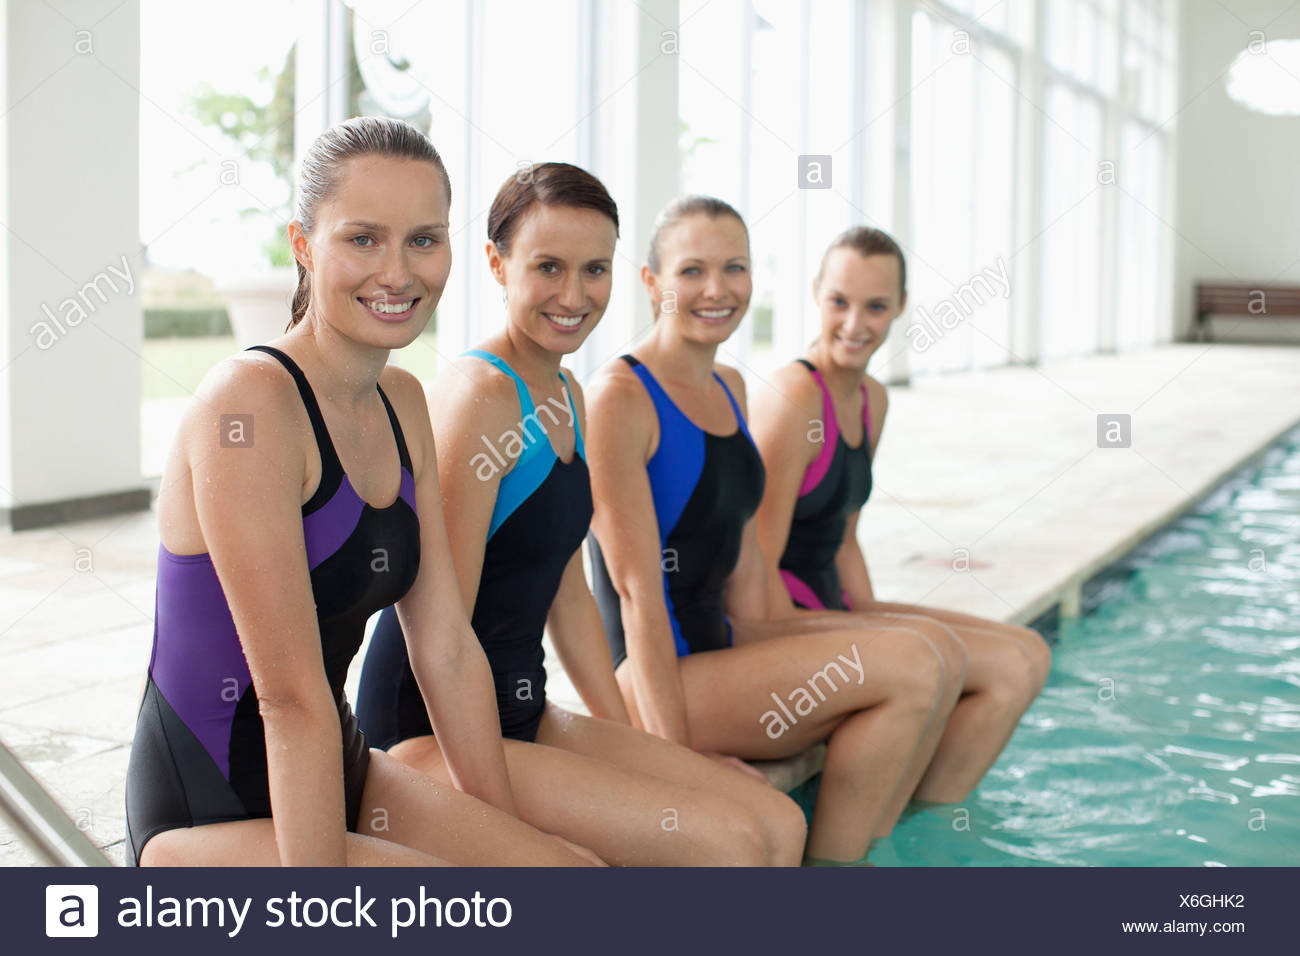 Portrait of smiling swimmers with feet in swimming pool - Stock Image